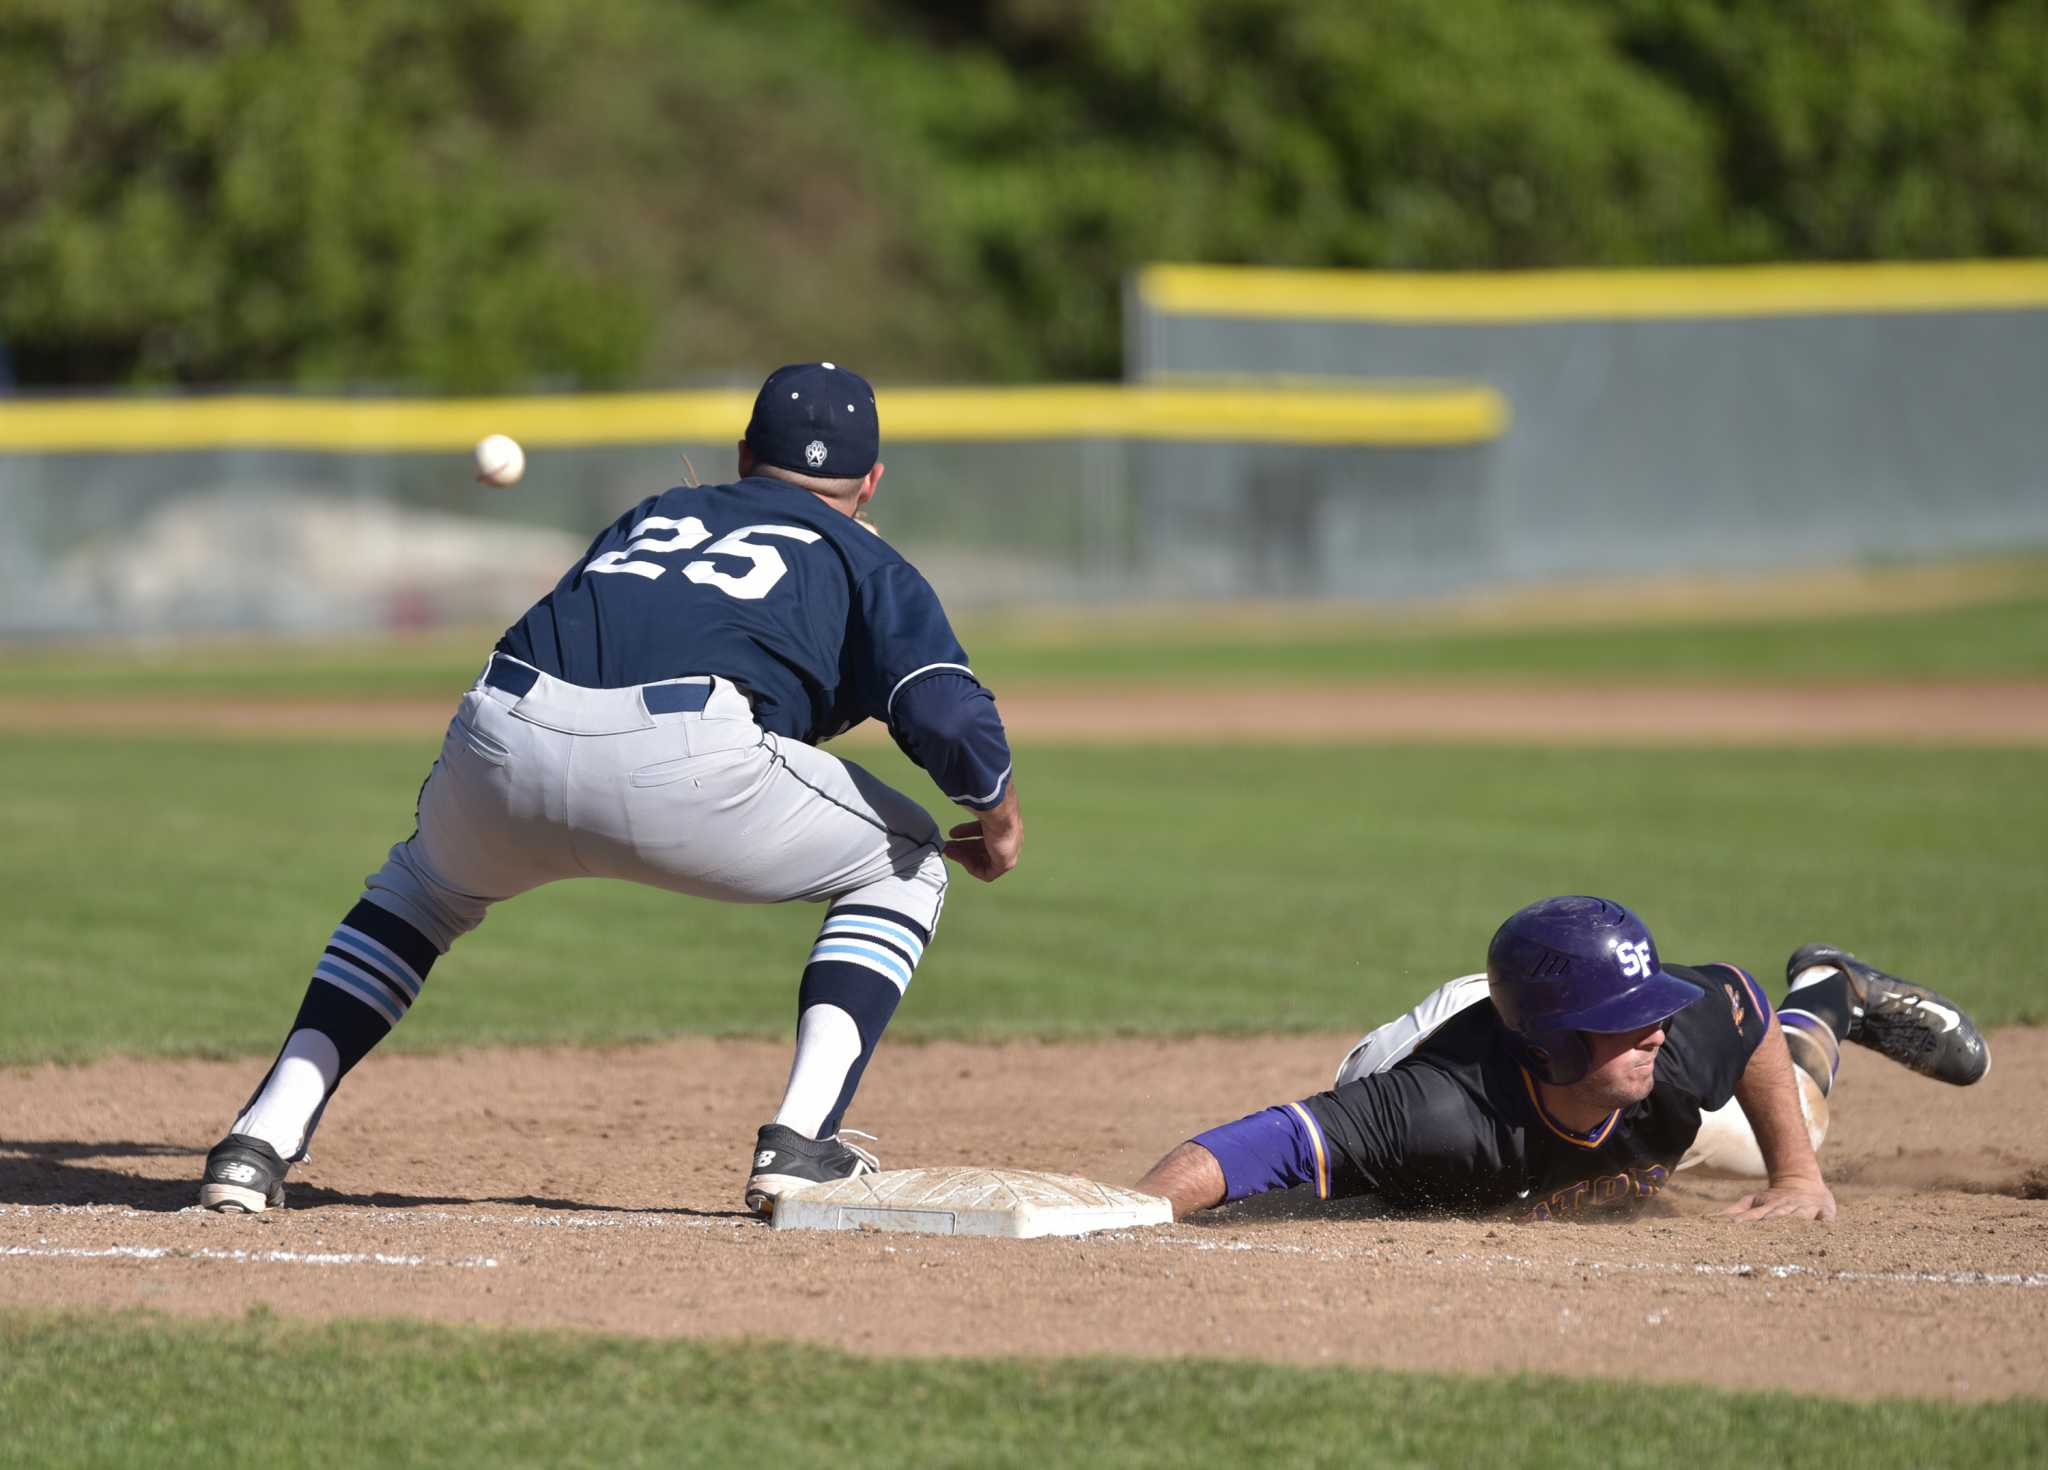 SF State Gators third baseman Connor Fraser (13) slides safely back to first base against Sonoma State Seawolves first baseman Tyler Glenn (25) in Gator's 6-1 win at Maloney Field in SF State Tuesday, Feb.23. (Qing Huang / Xpress)